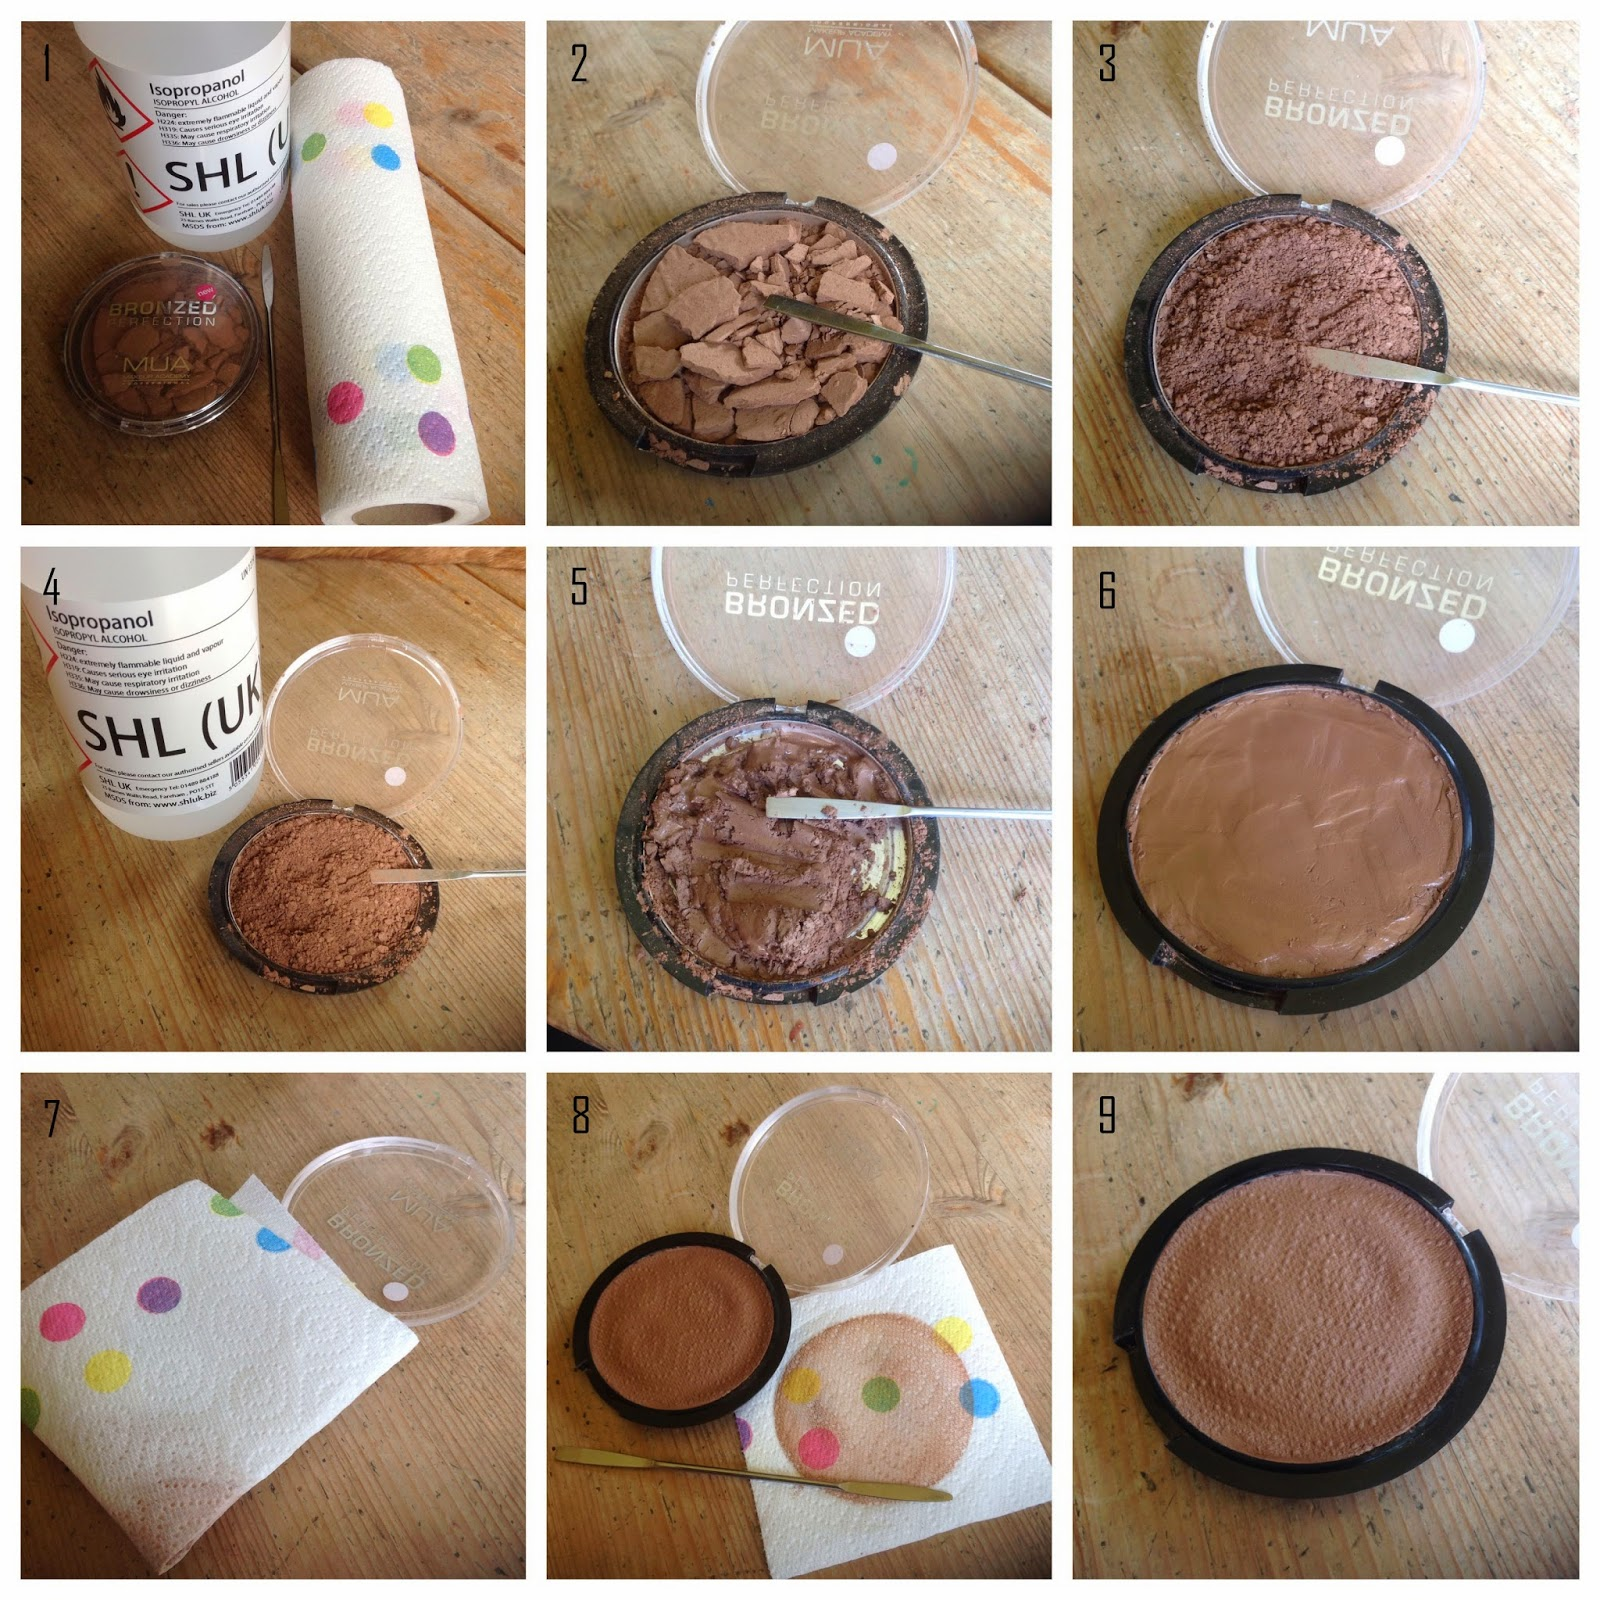 How to fix broken powder makeup with alcohol in four simple steps - Step 1 You Re Going To Need You Re Broken Powder Rubbing Alcohol A Spatula And Some Kitchen Roll